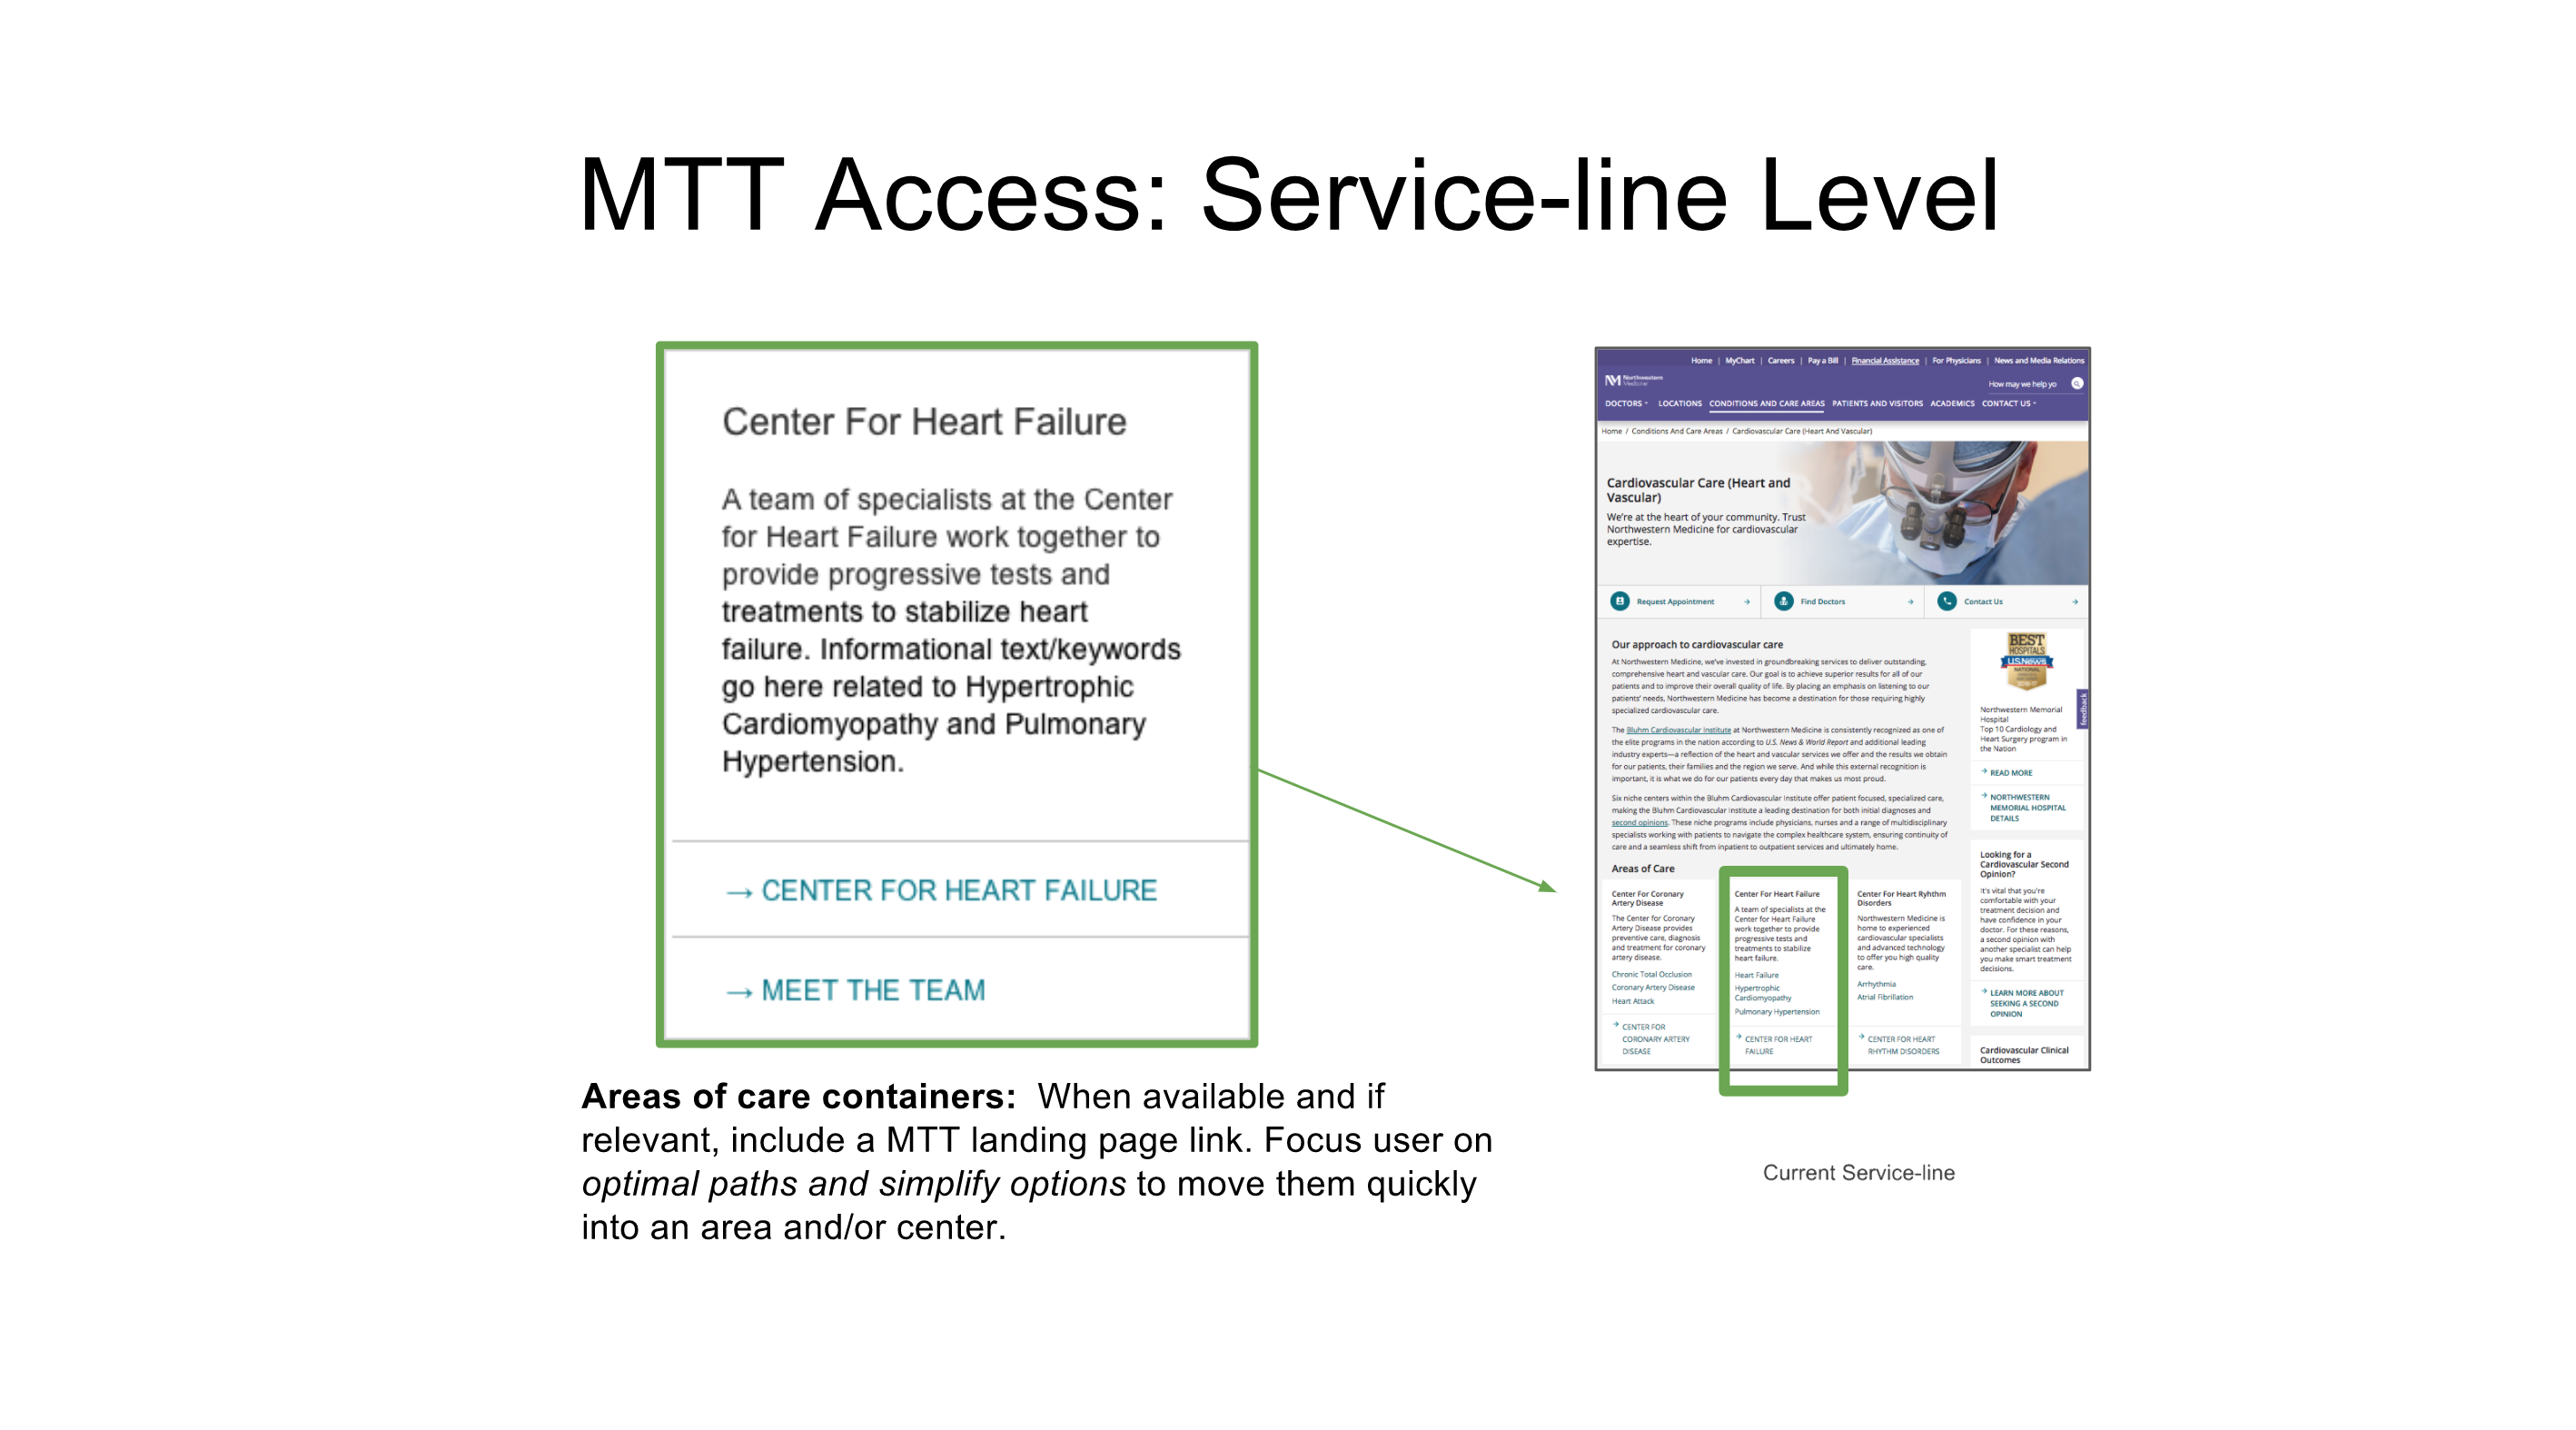 Underdeveloped pages become very evident. Soft updates to access MTT content are called out.